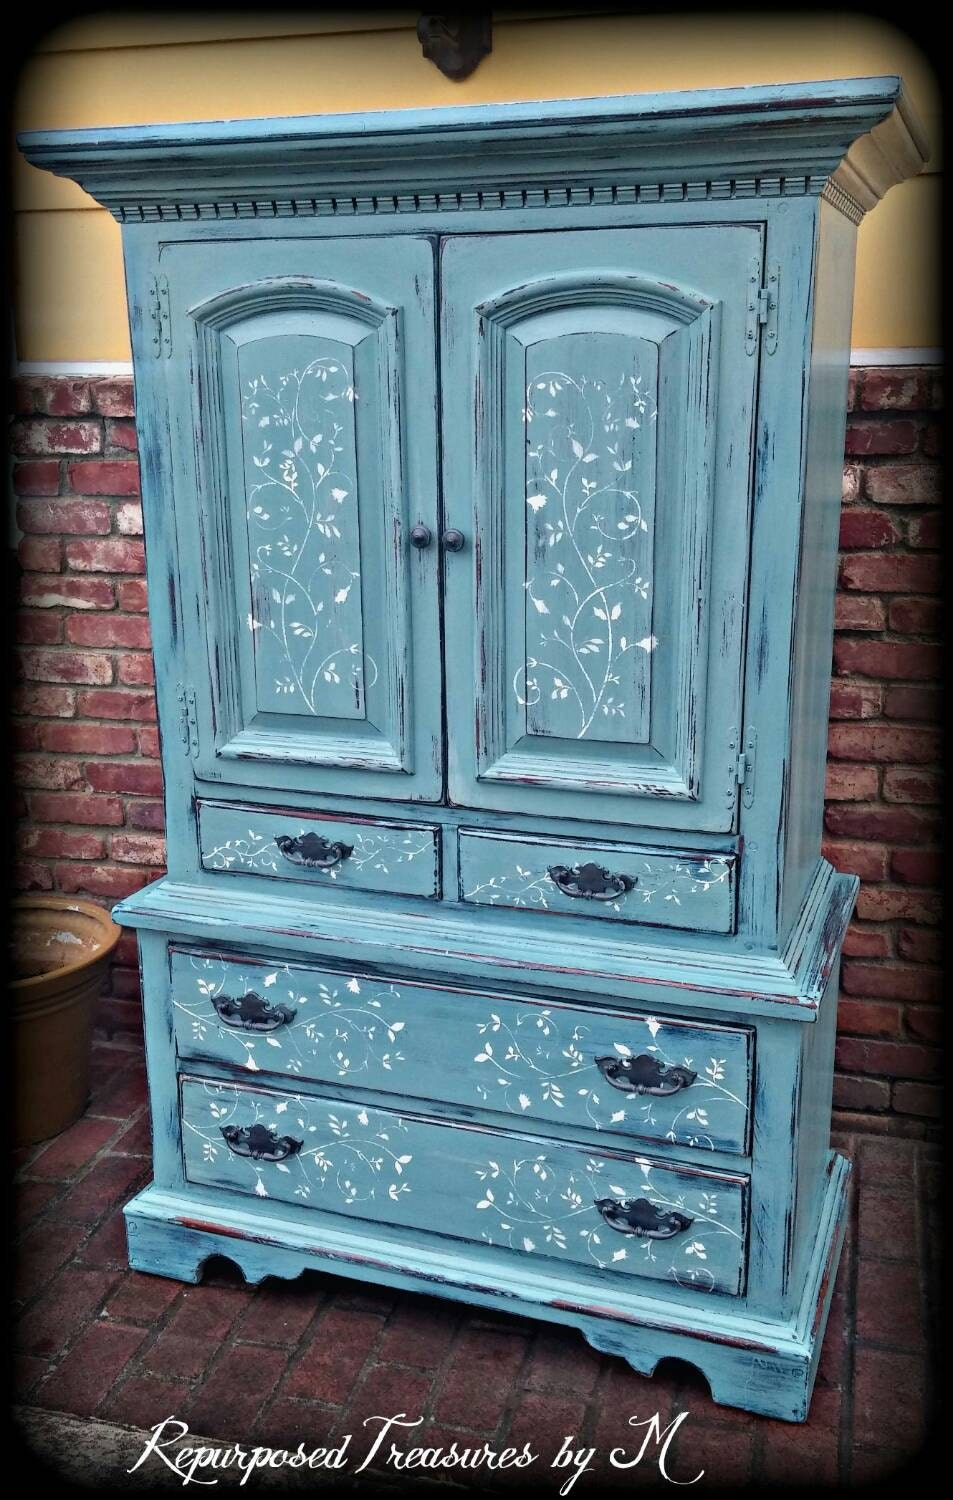 SOLD SOLD Vintage armoire blue armoire children's